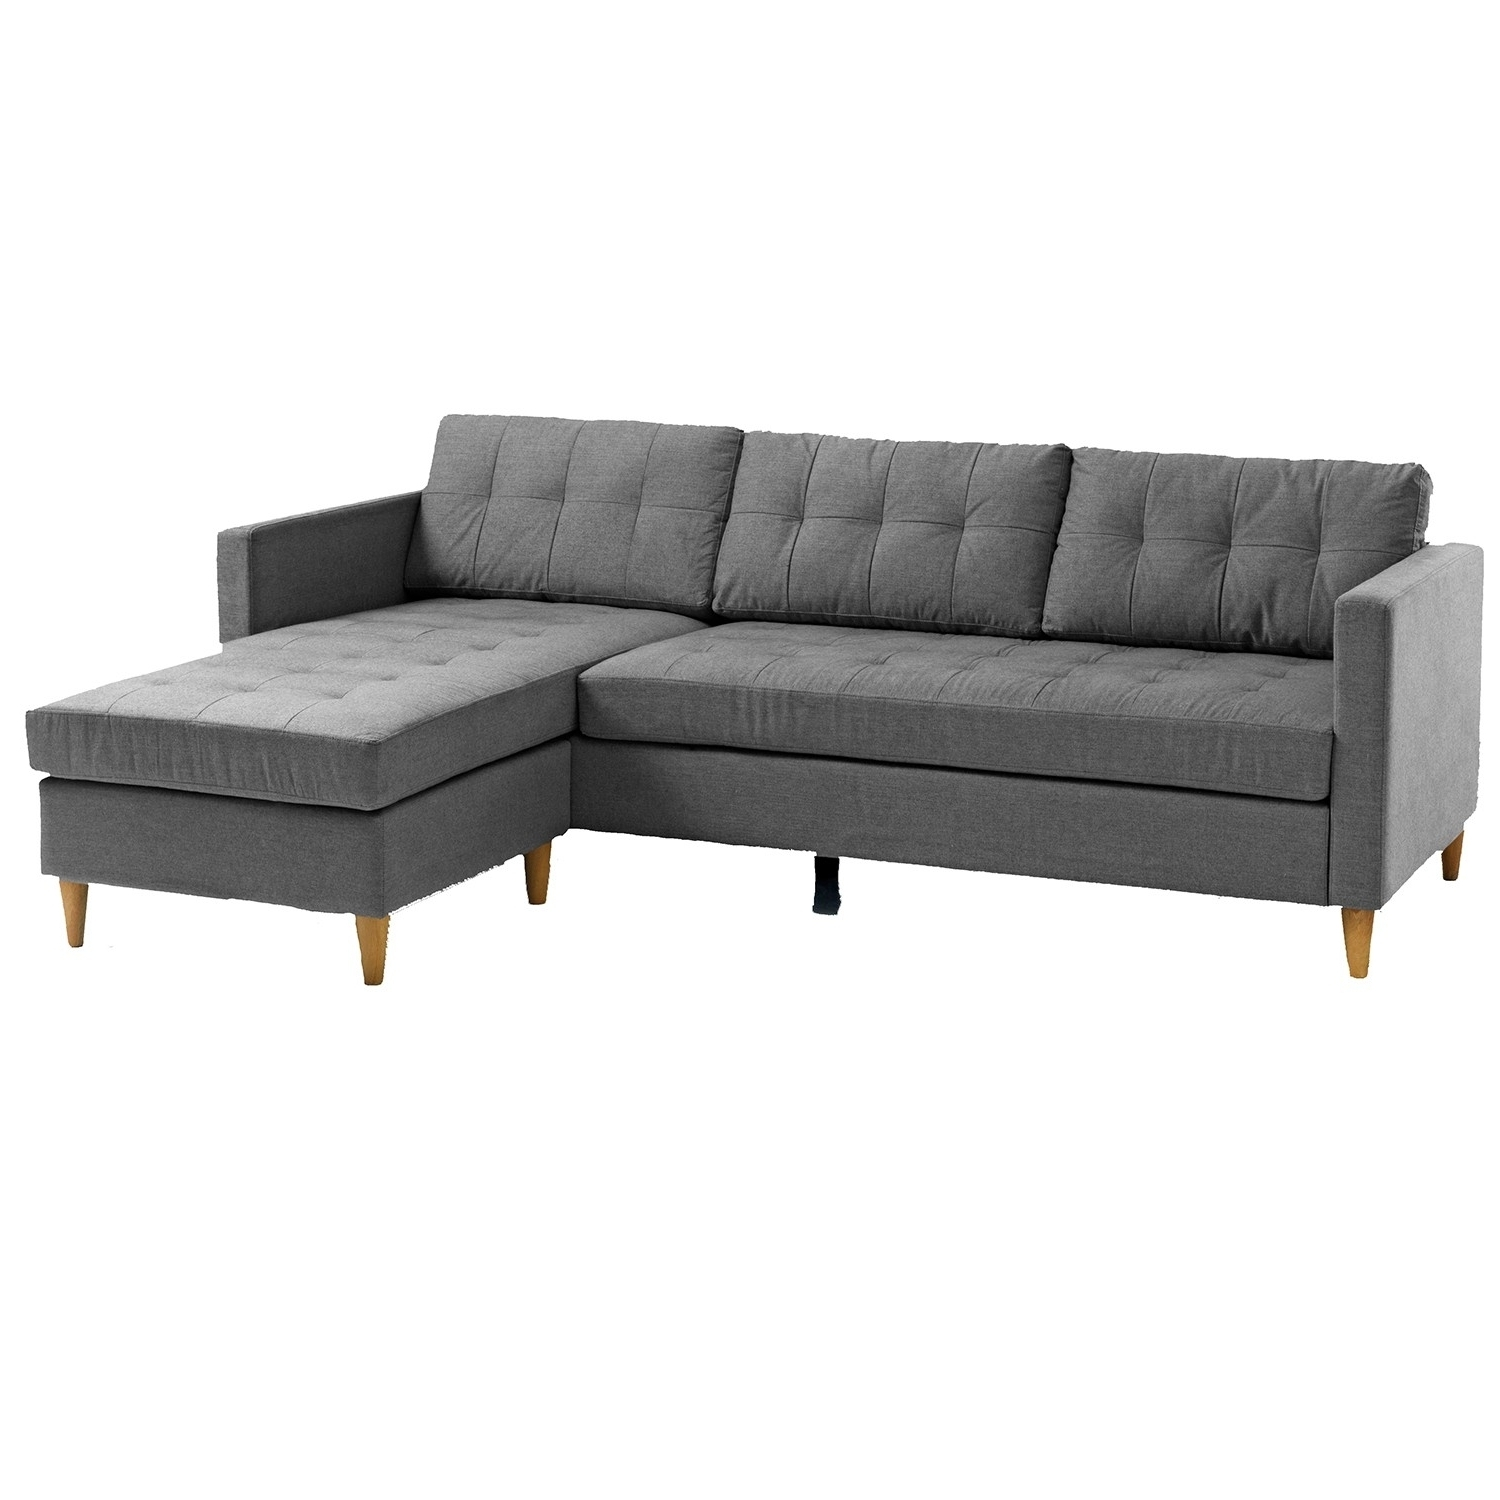 Jysk Sectional Sofas Regarding Best And Newest Hansen Sofa Bed Jysk • Sofa Bed (View 6 of 20)